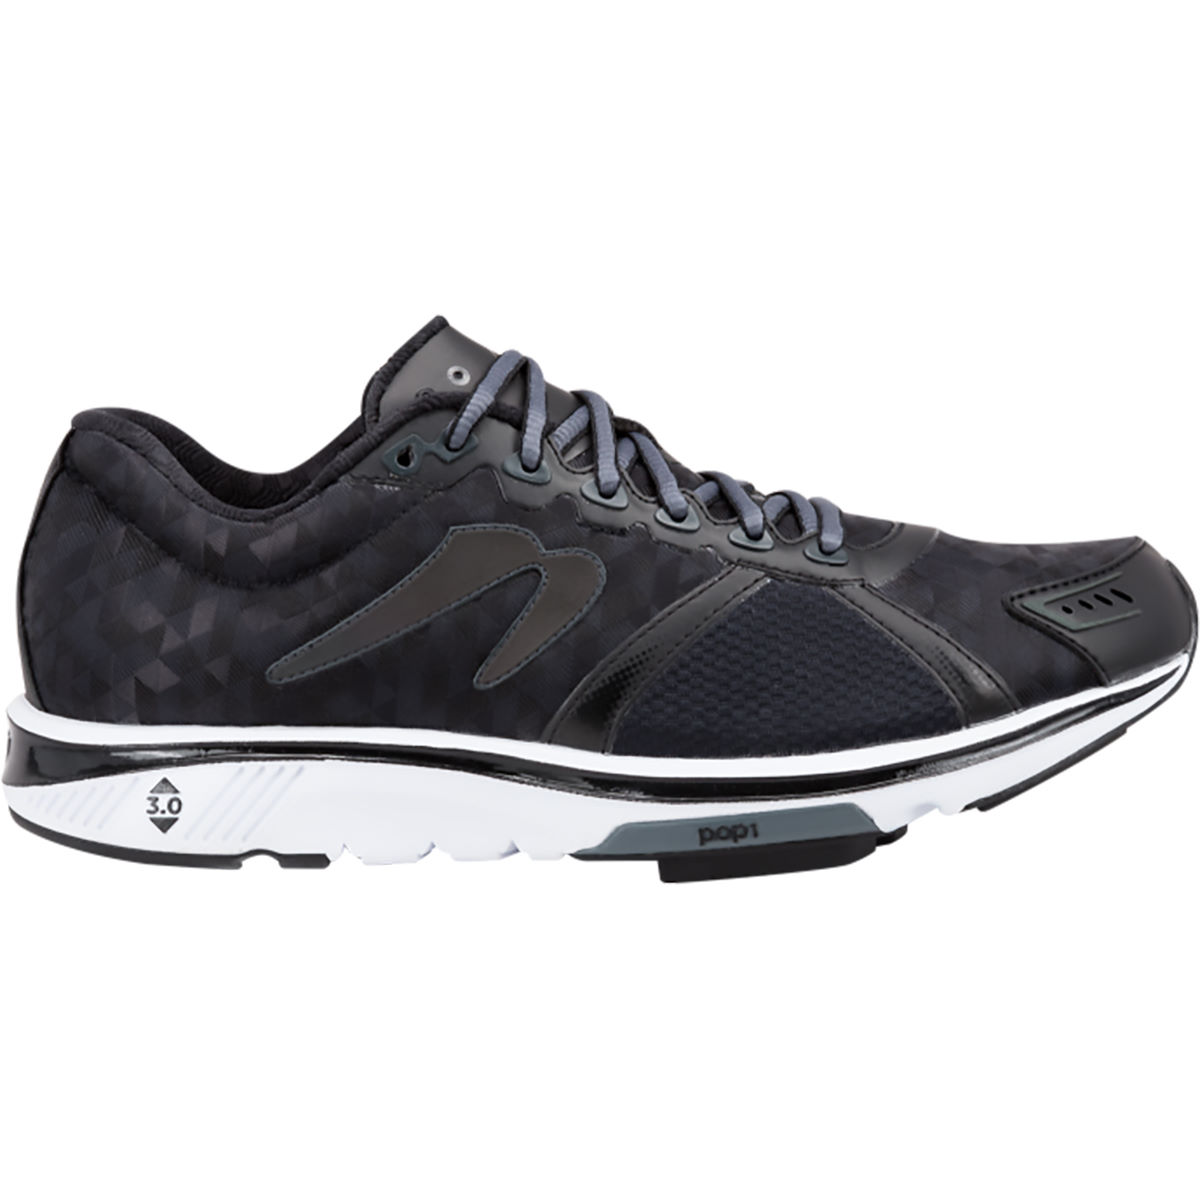 Newton Running Shoes Gravity V Black Shoes (AW16) - UK 11 Black